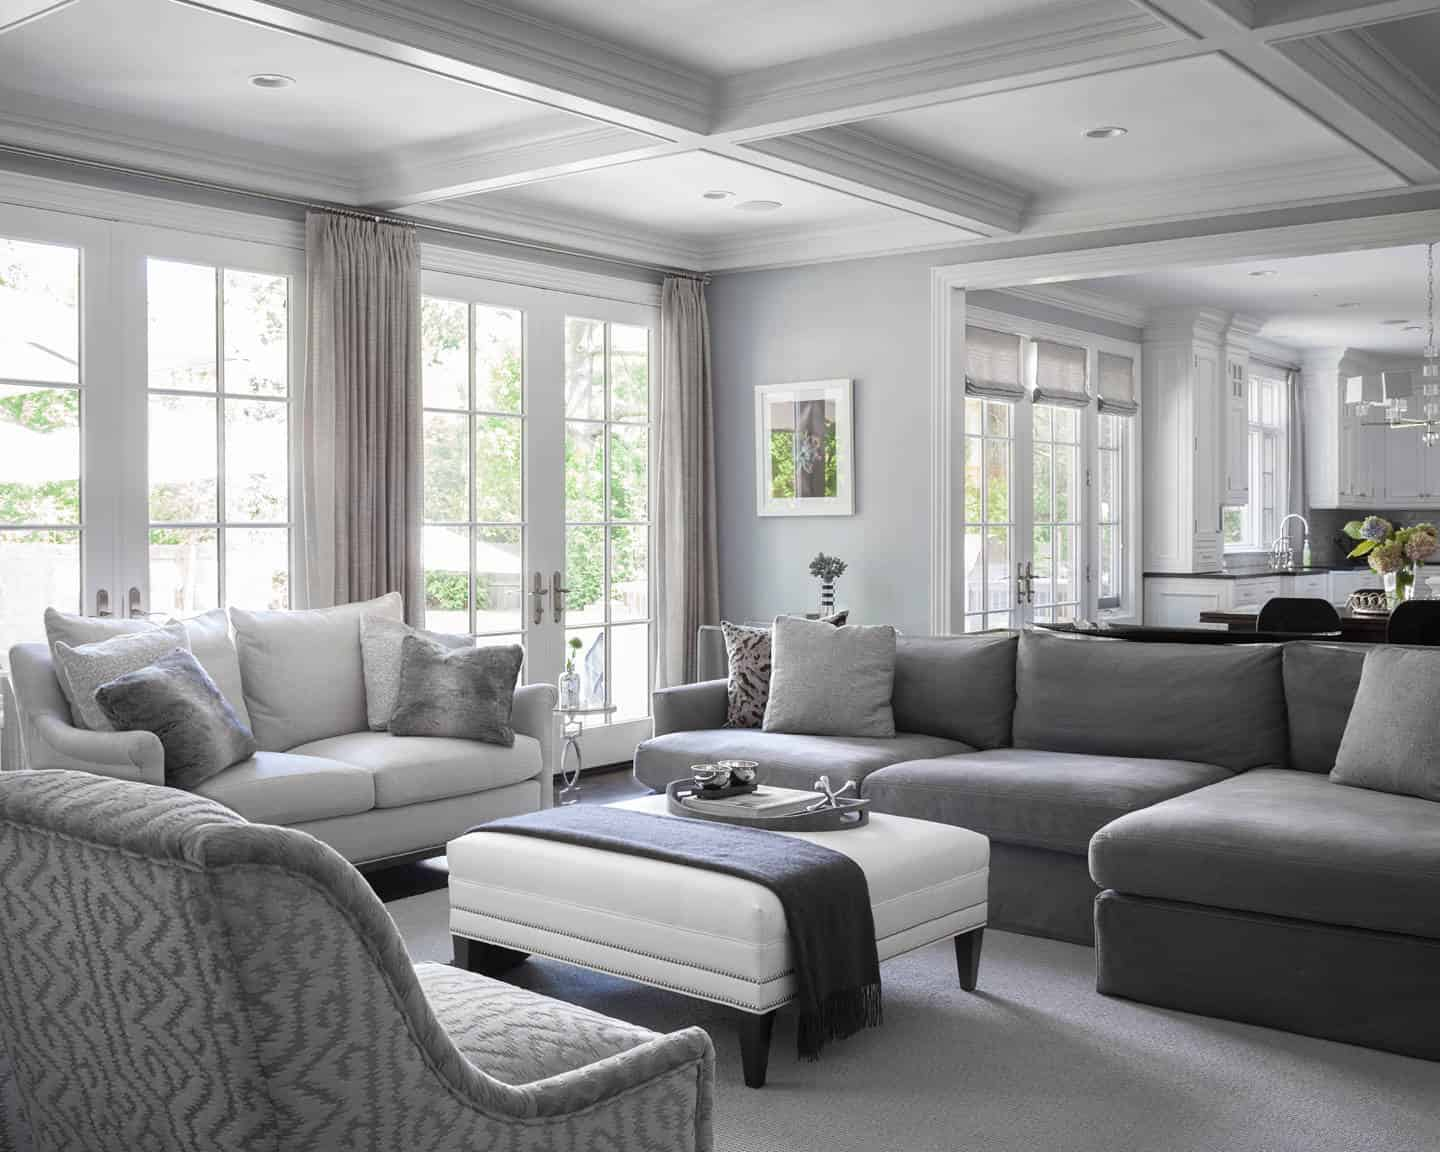 27 Modern Gray Living Room Ideas For A Stylish Home 2020 Edition